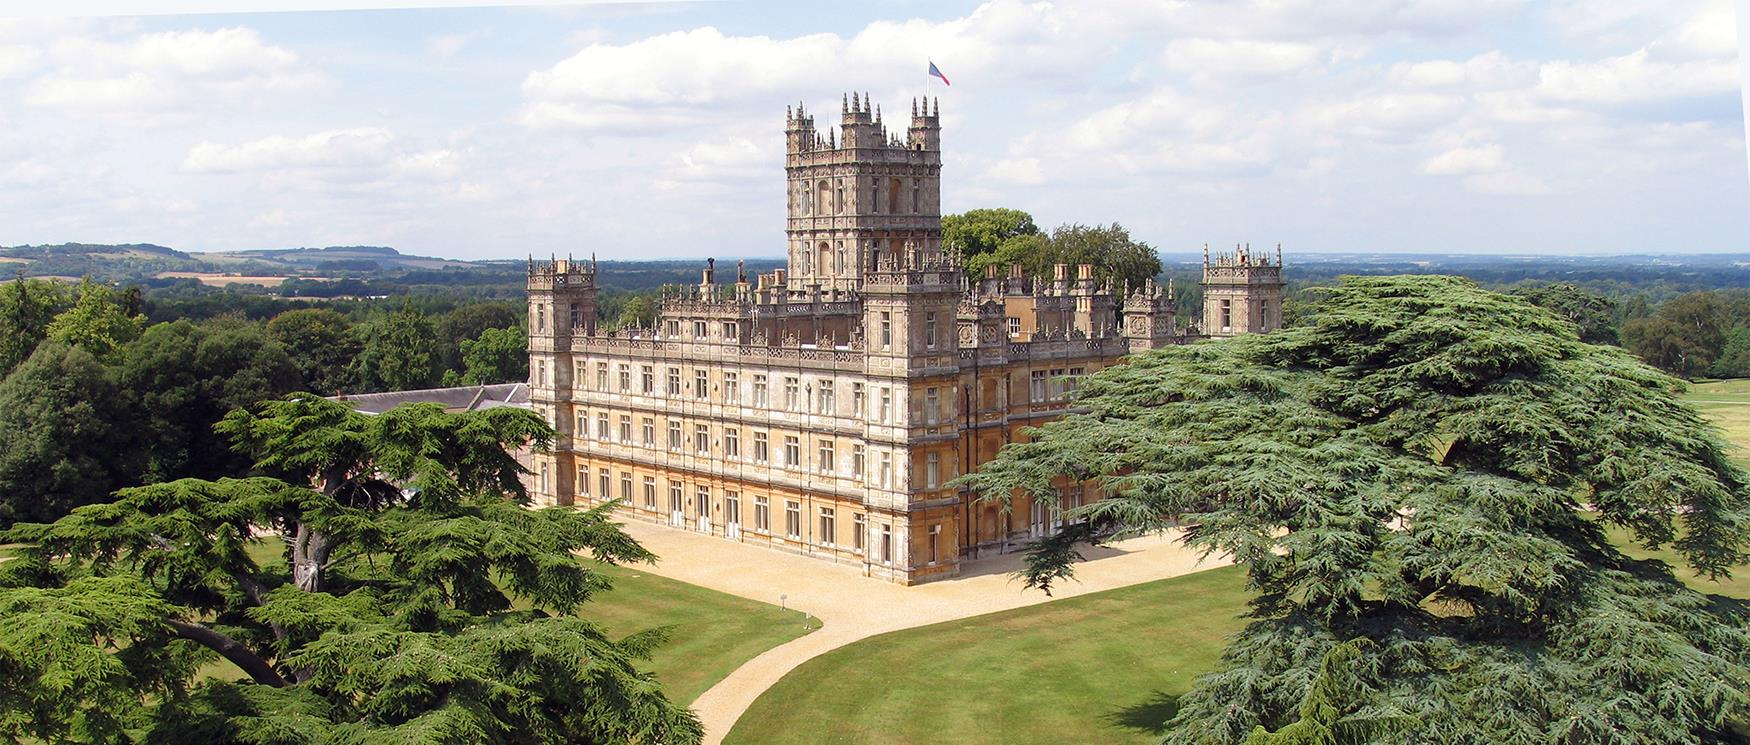 Highclere Castle Location for Downton Abbey